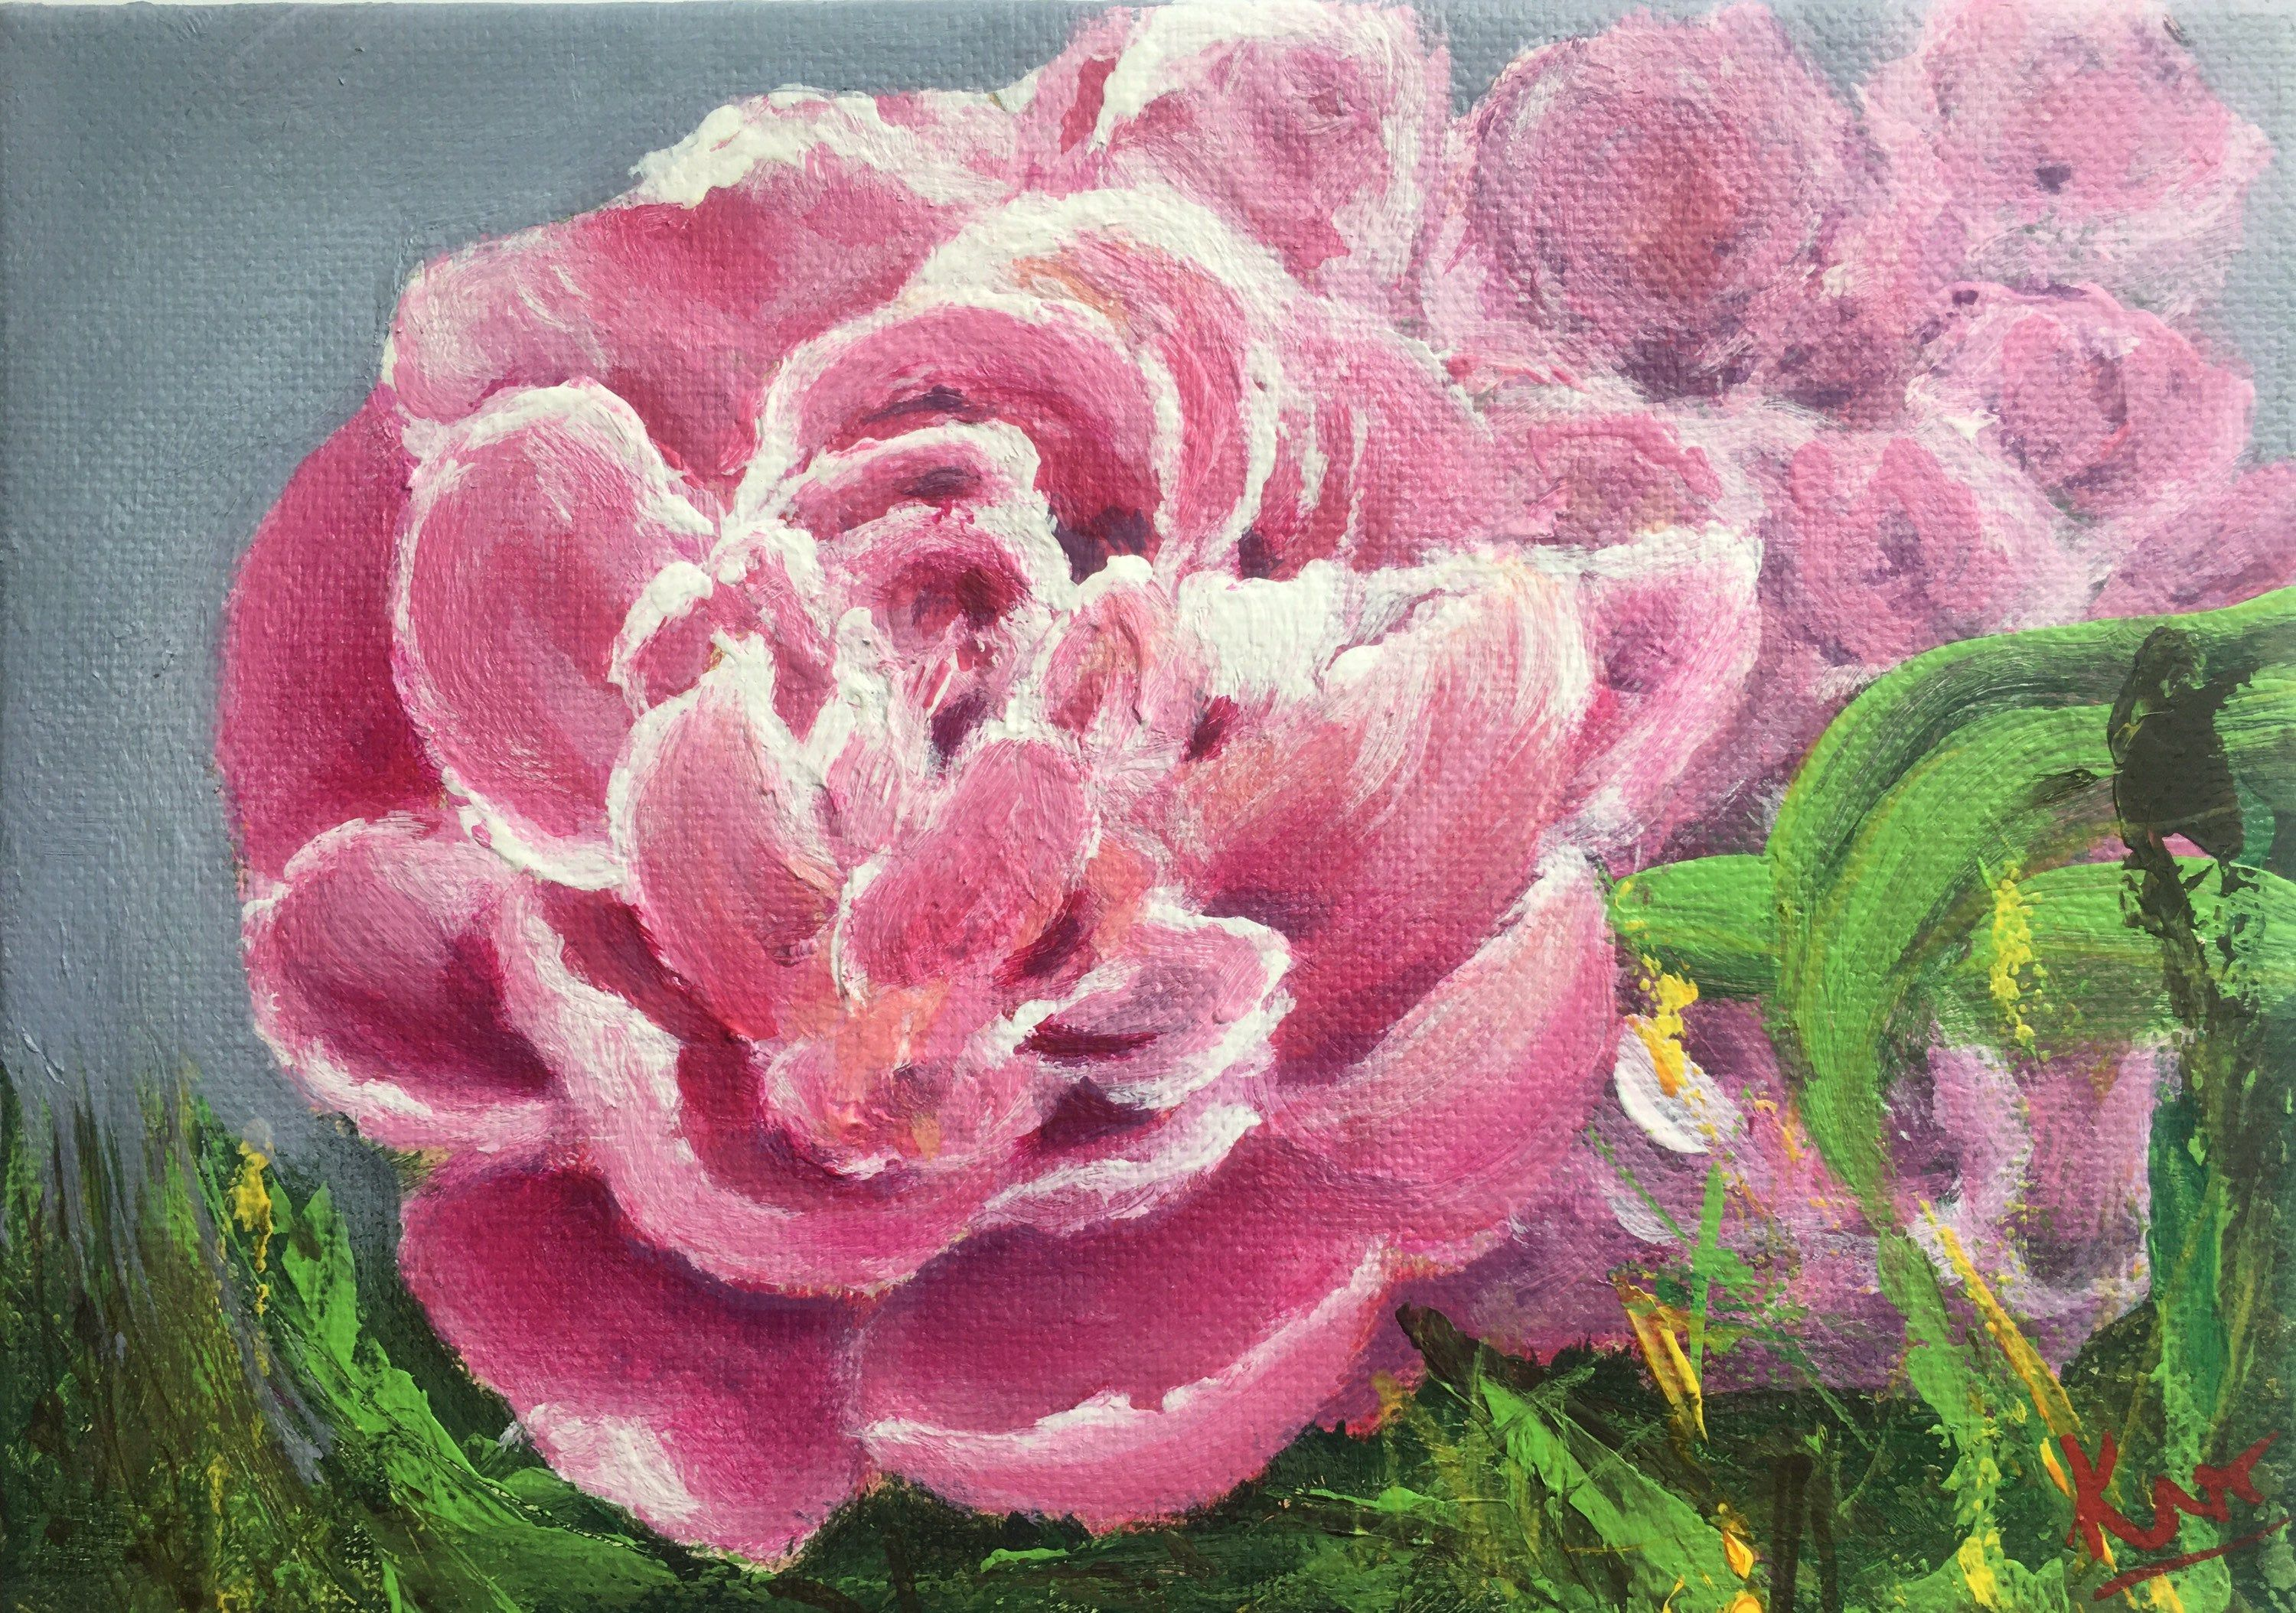 Roses Acrylic painting in impressionistic style by Komal Wadhwa